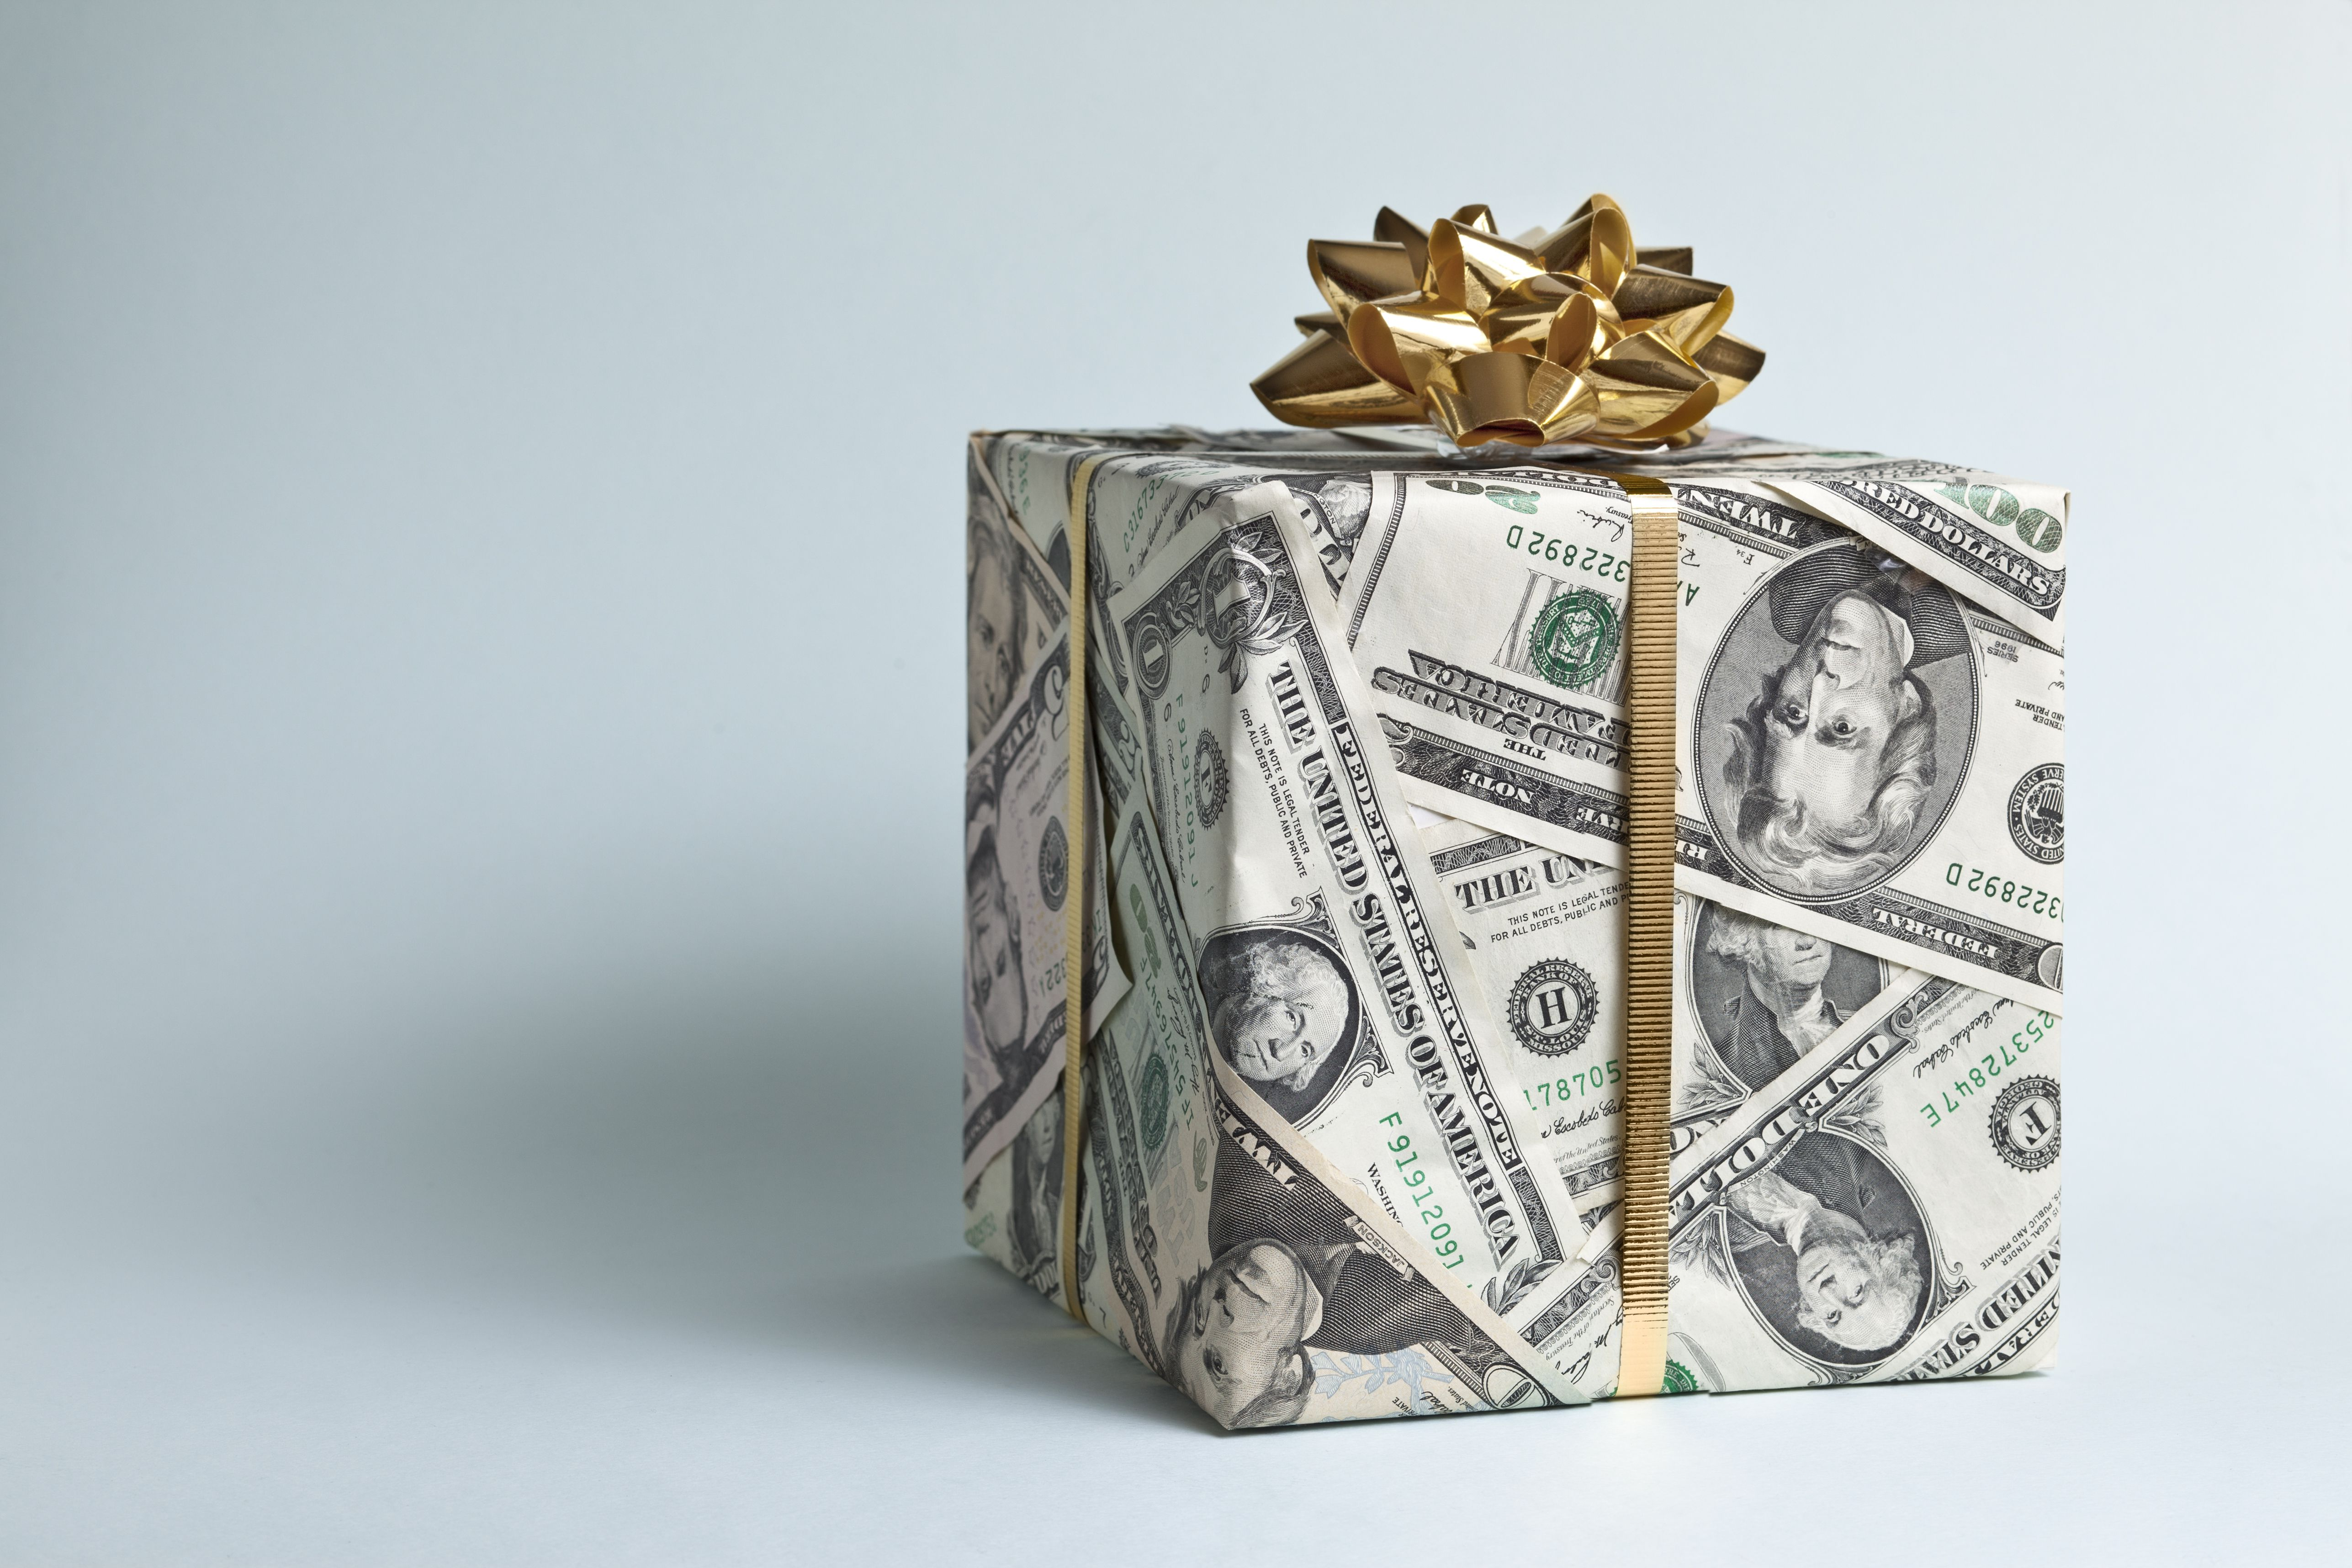 Gift wrapped in dollar bill gift wrap paper and tied with a gold bow